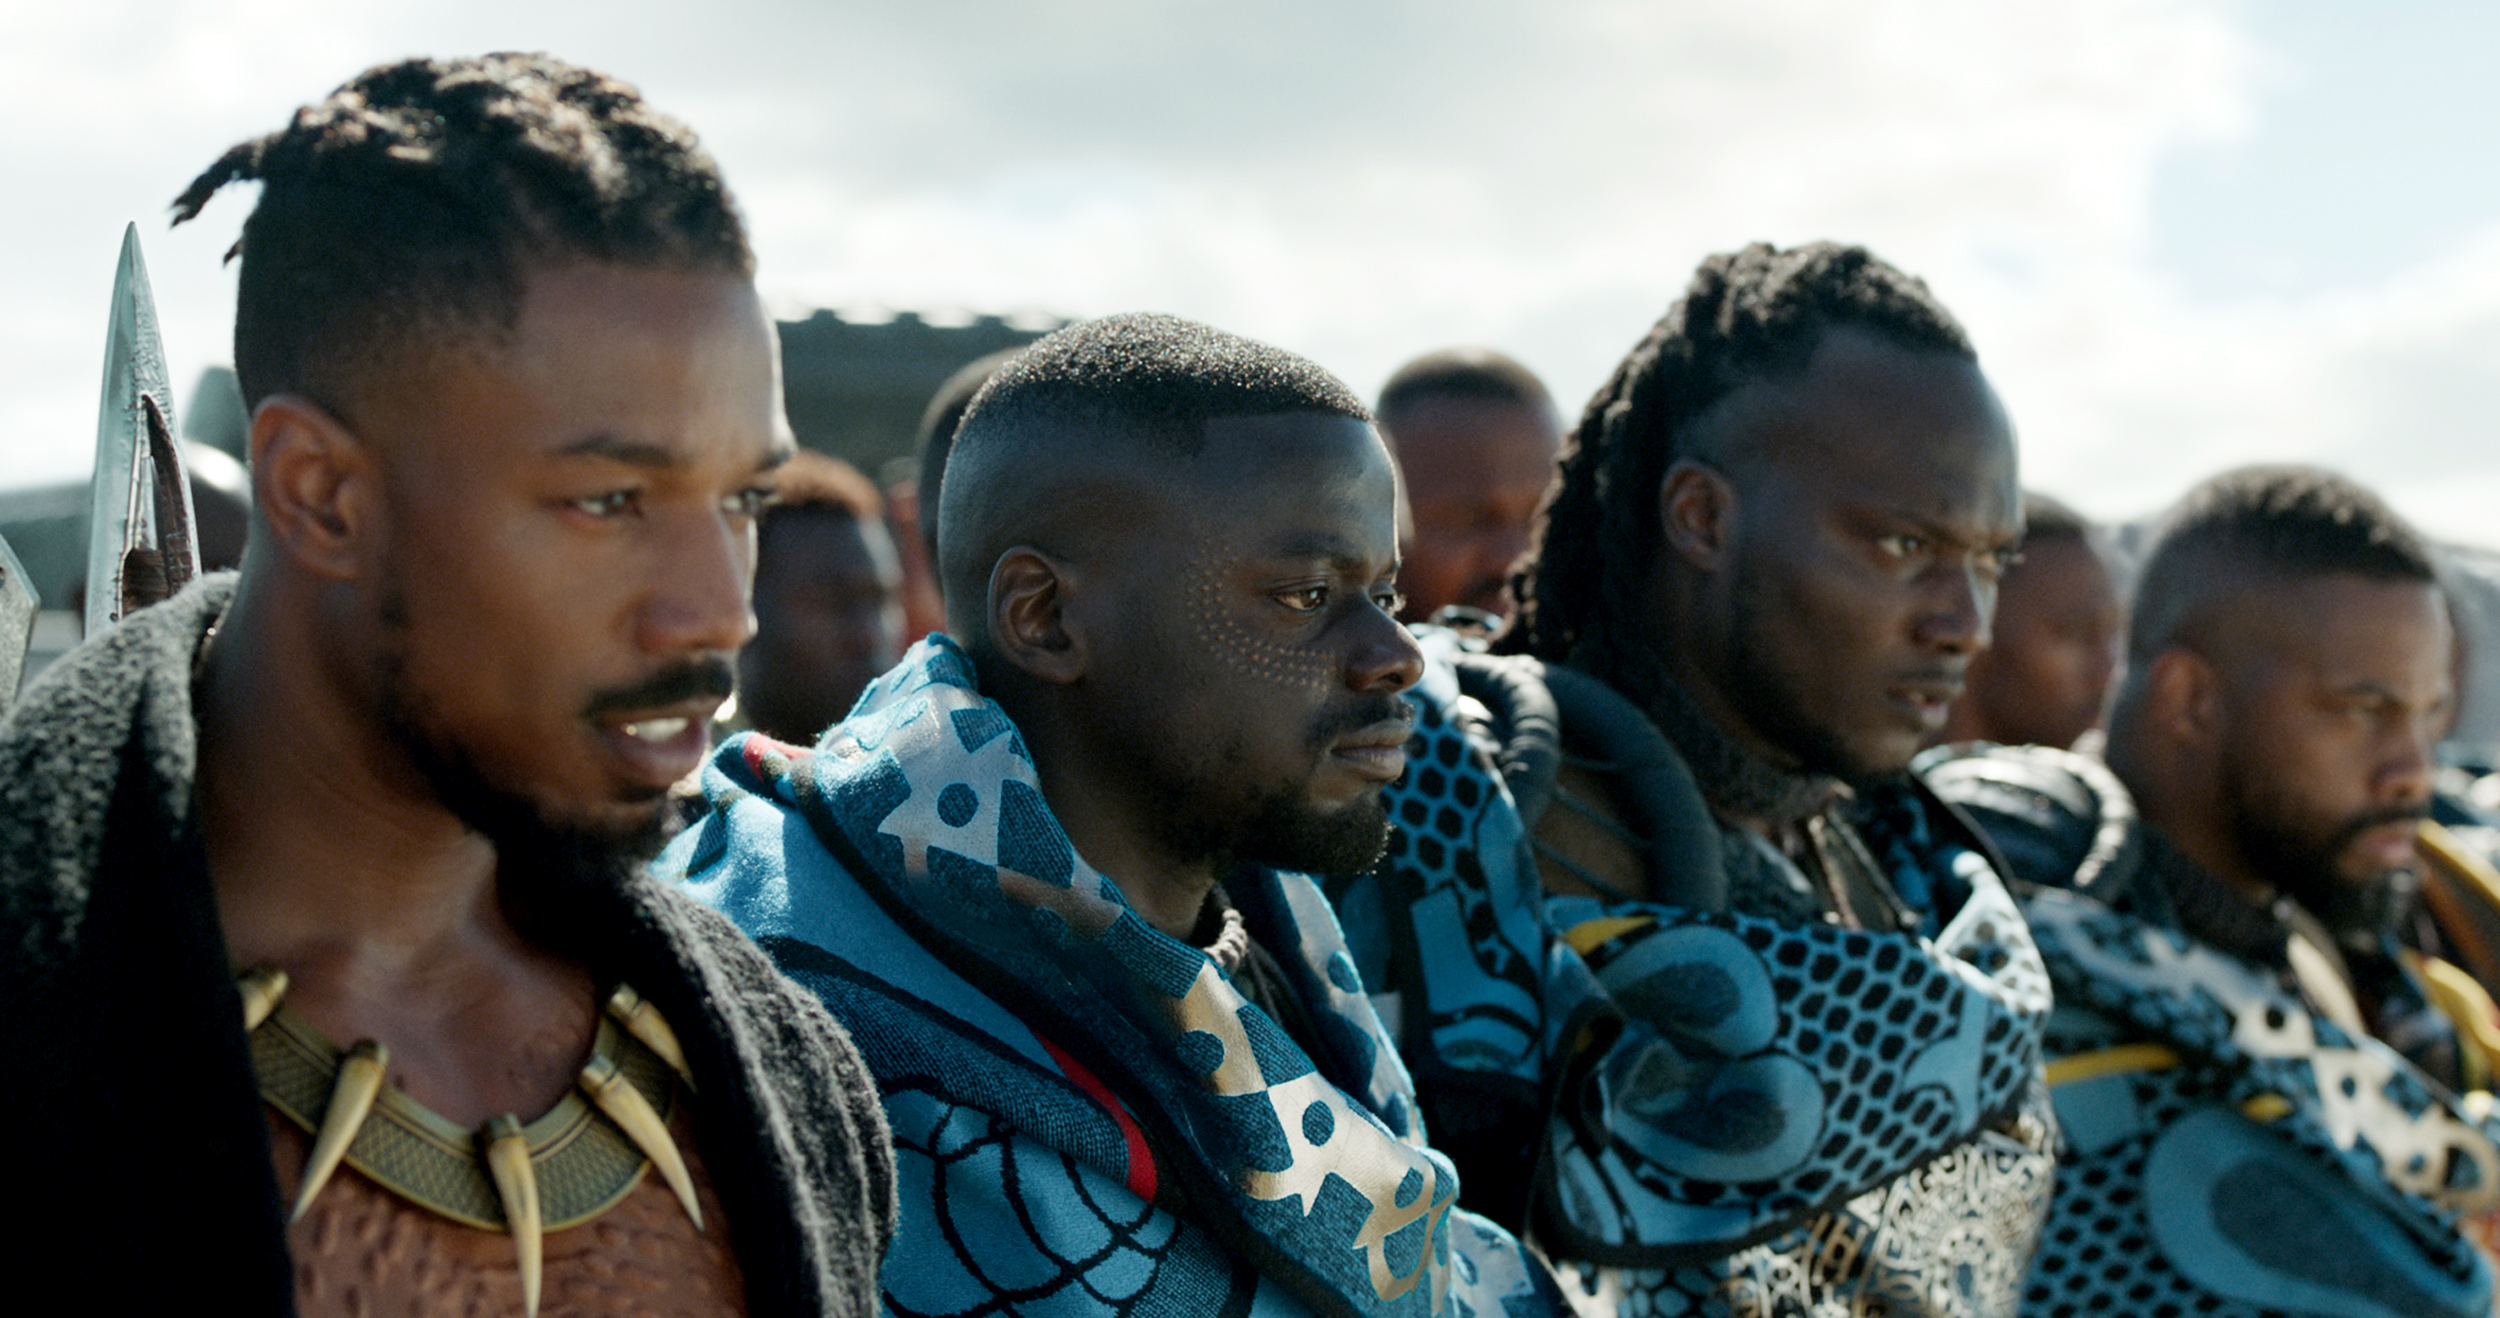 Impact from 'Black Panther' will go beyond box office returns